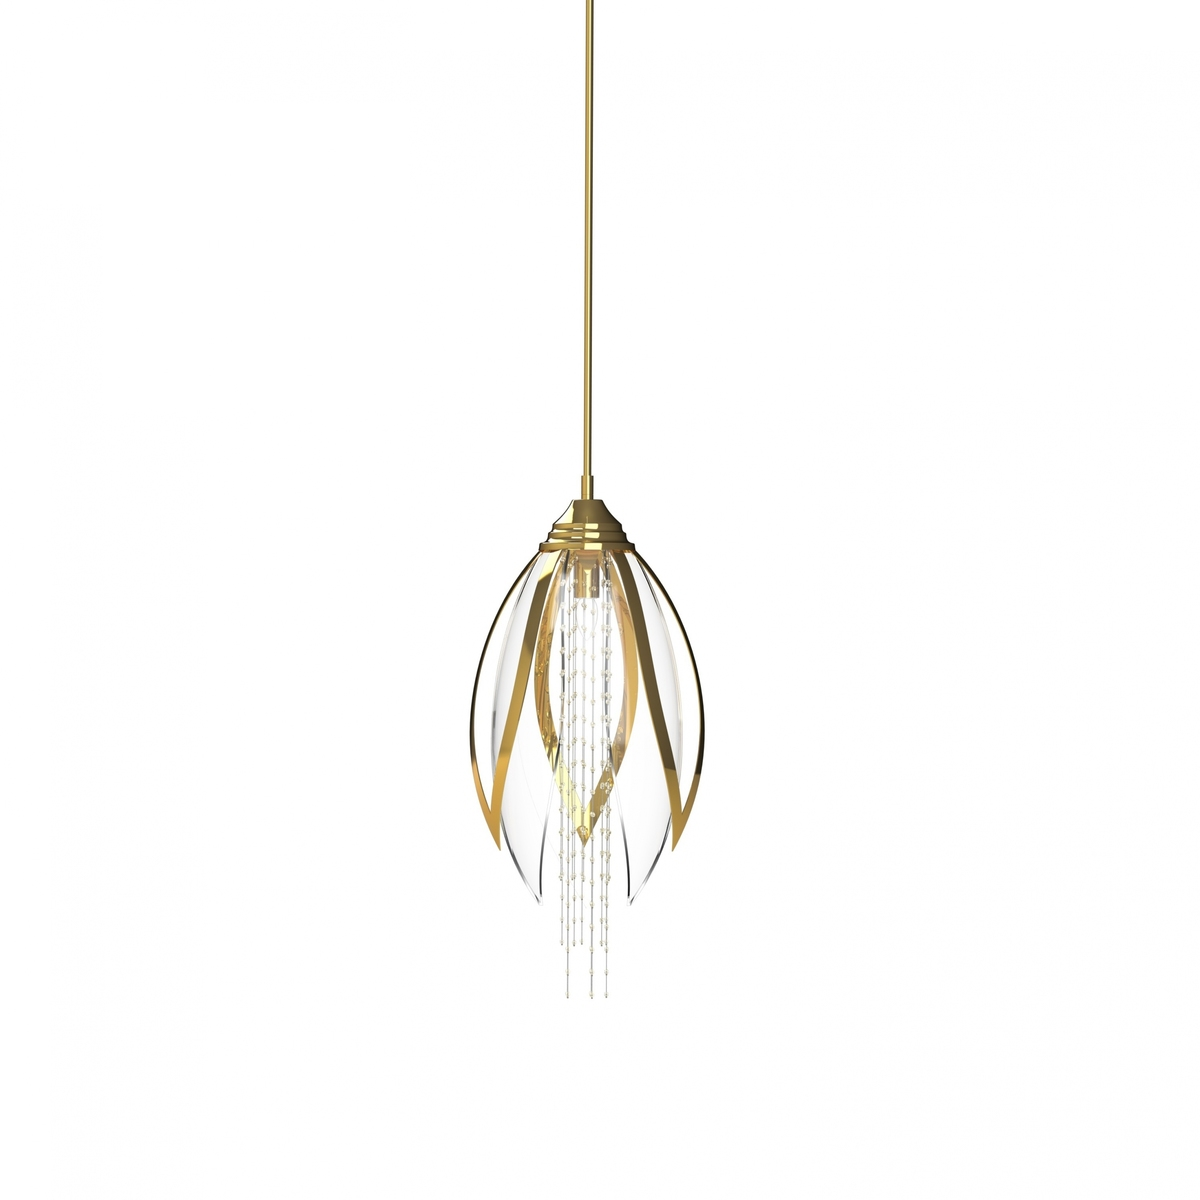 Chandelier SNOWFLOWER 02 – CH